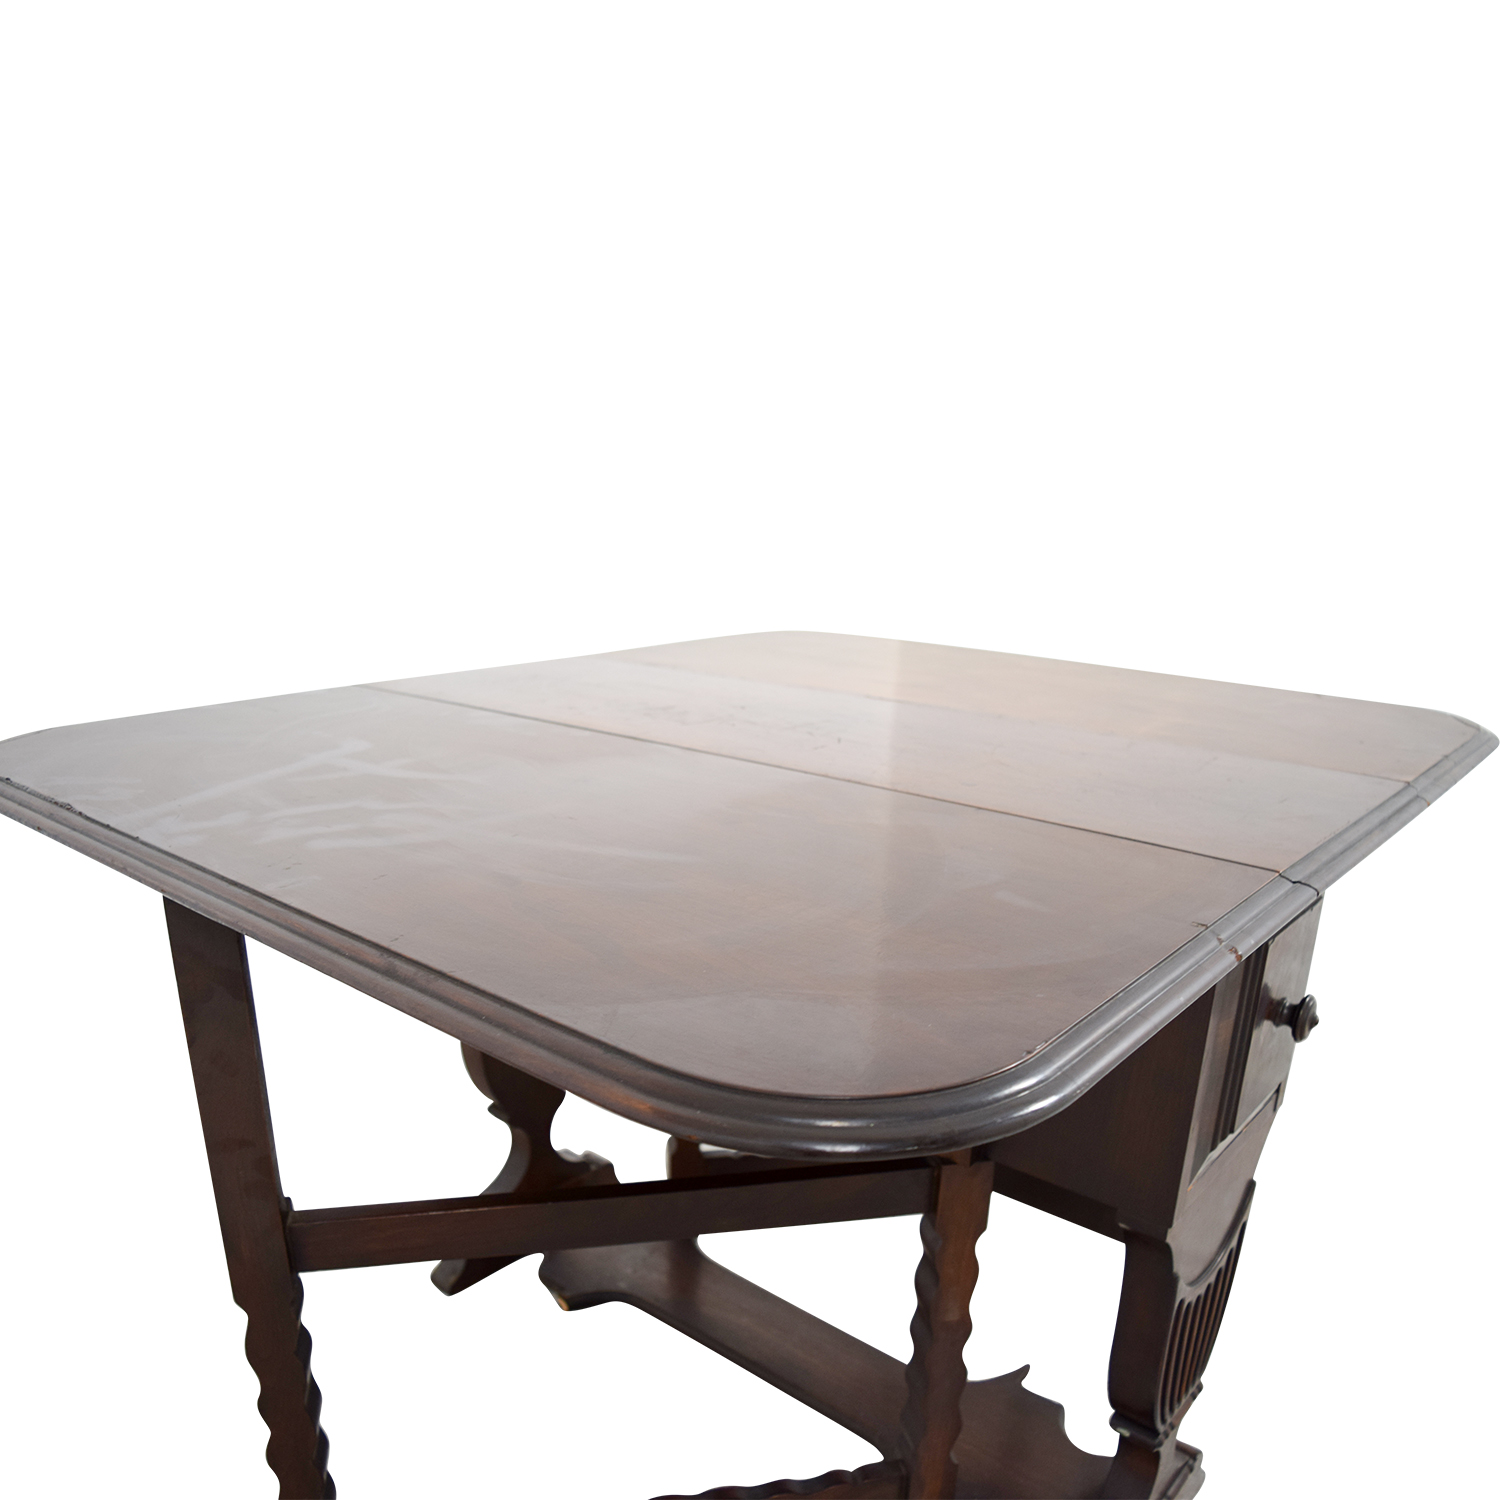 buy 1950s Drop Leaf Table with Drawers online